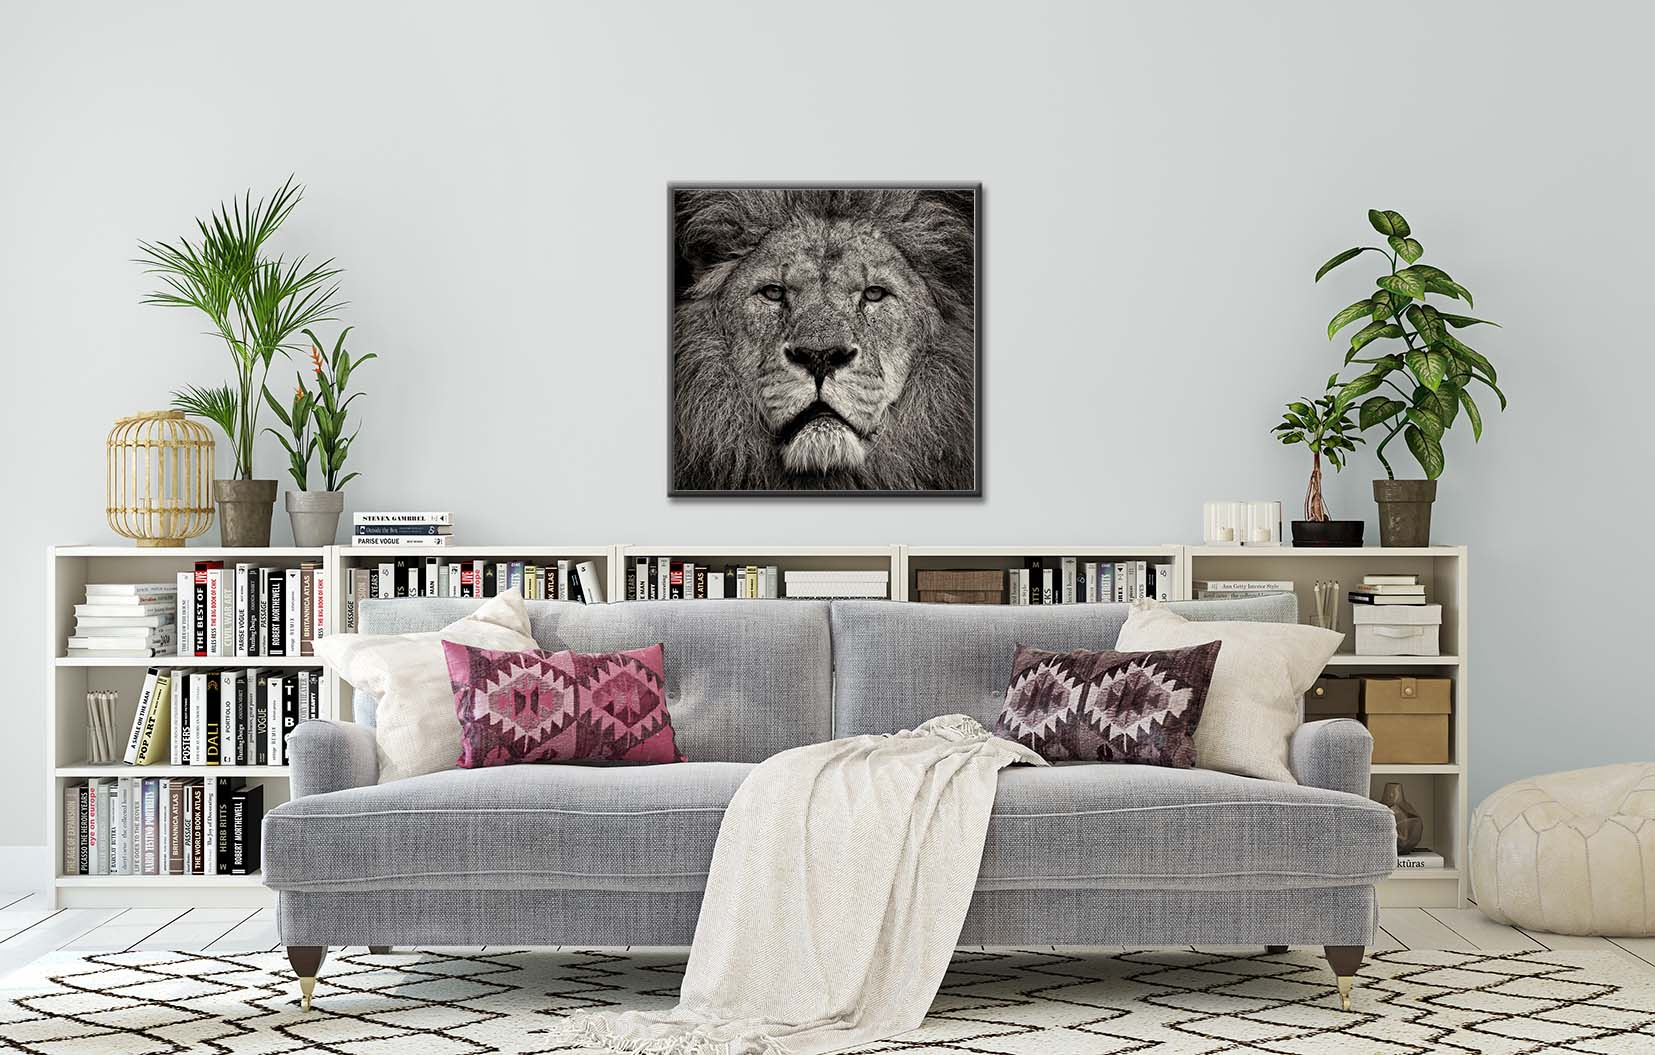 Lion's Stare - portrait of a lion looking into the camera. Limited edition photographic prints by fine art photographer Paul Coghlin.